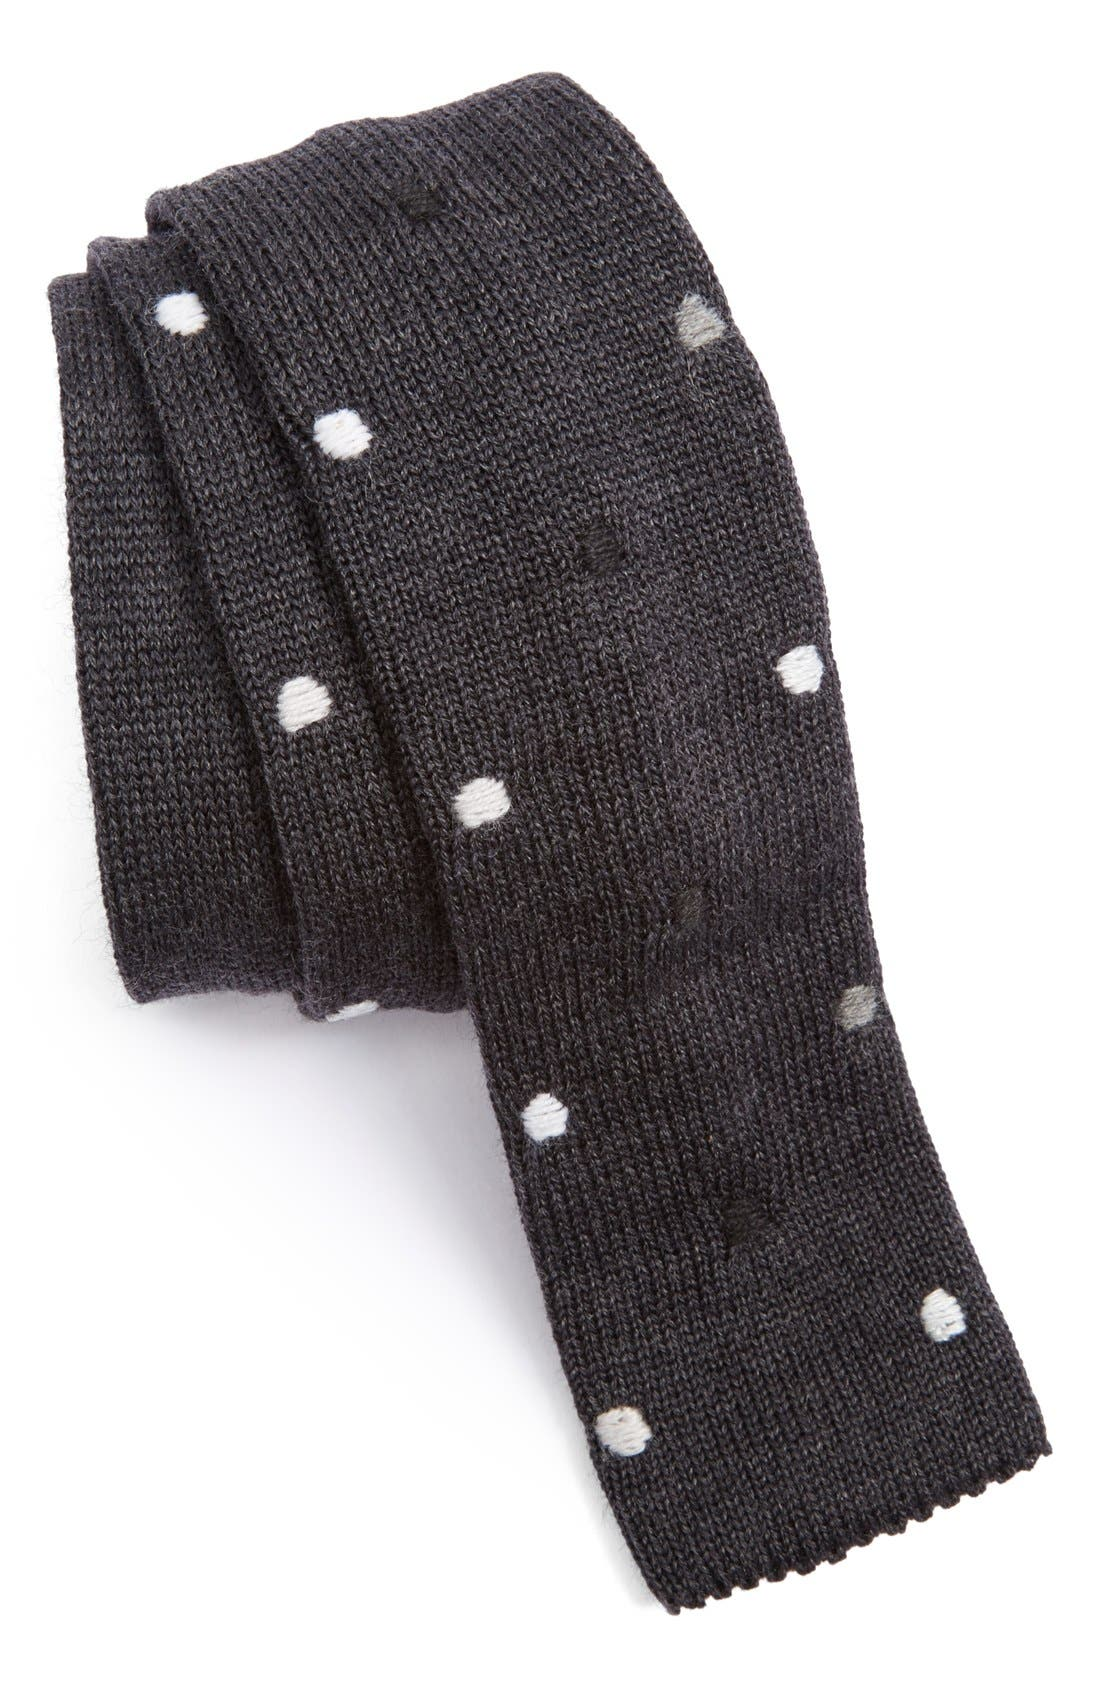 Alternate Image 1 Selected - Paul Smith Knit Wool Tie